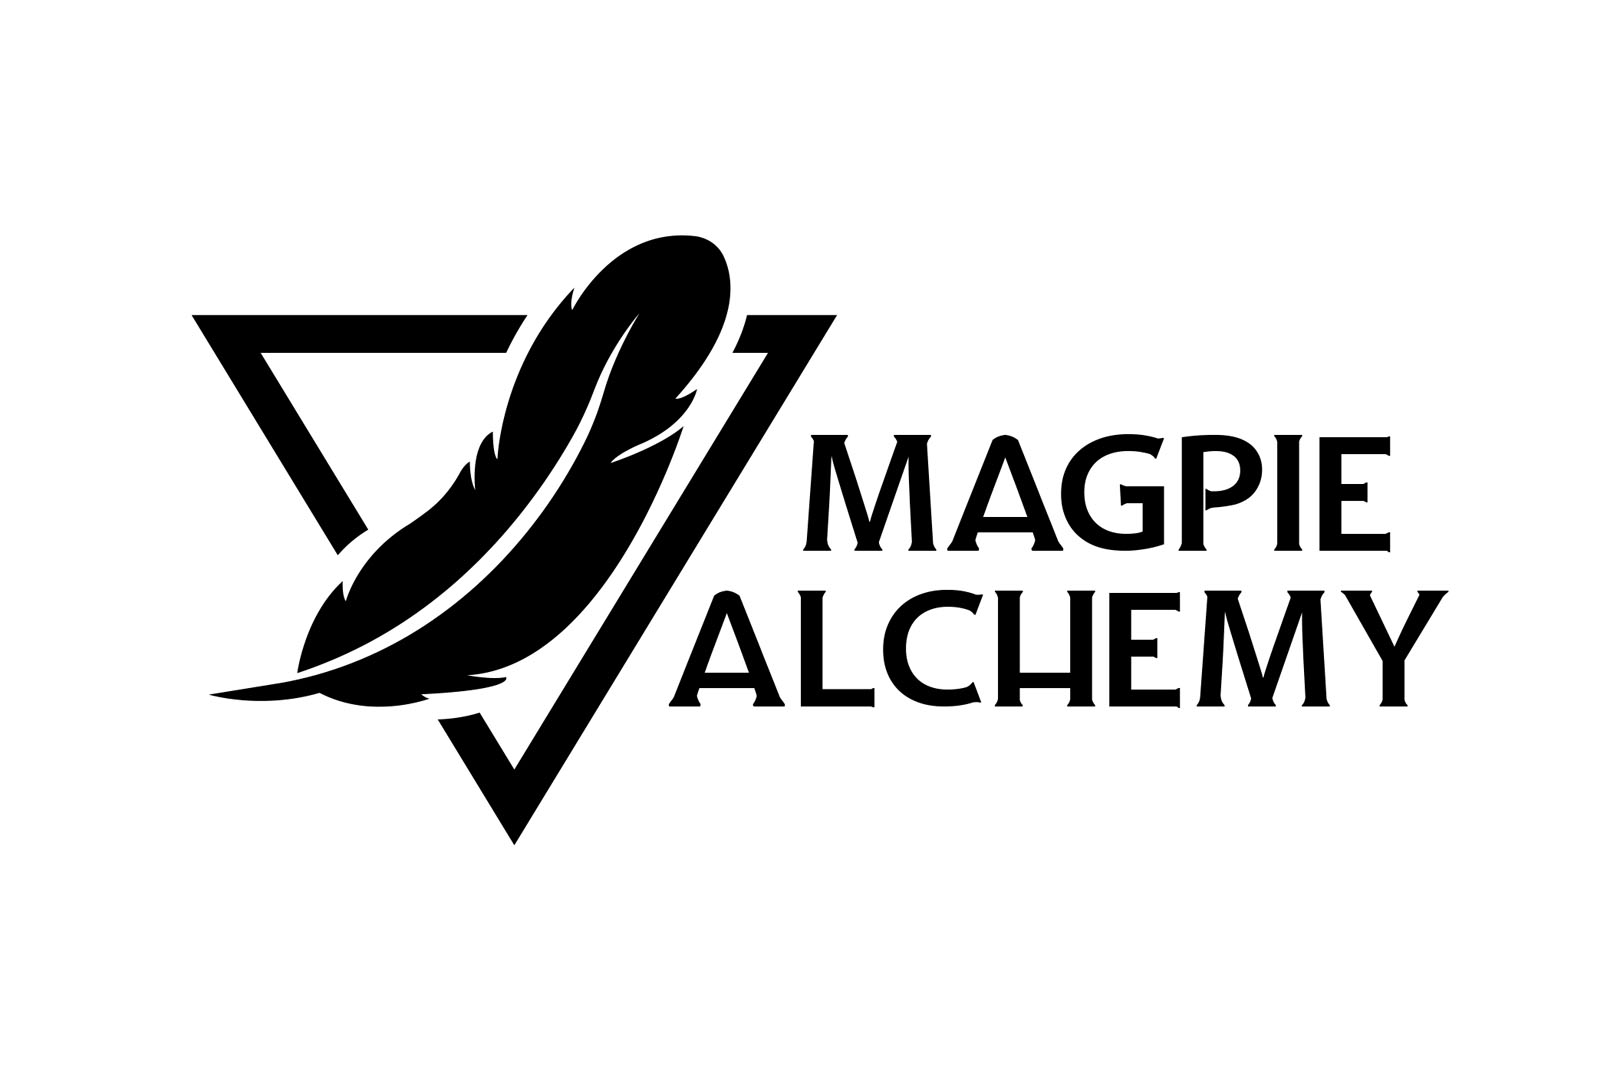 Magpie_Alchemy_logo_mock_0001_Layer 6